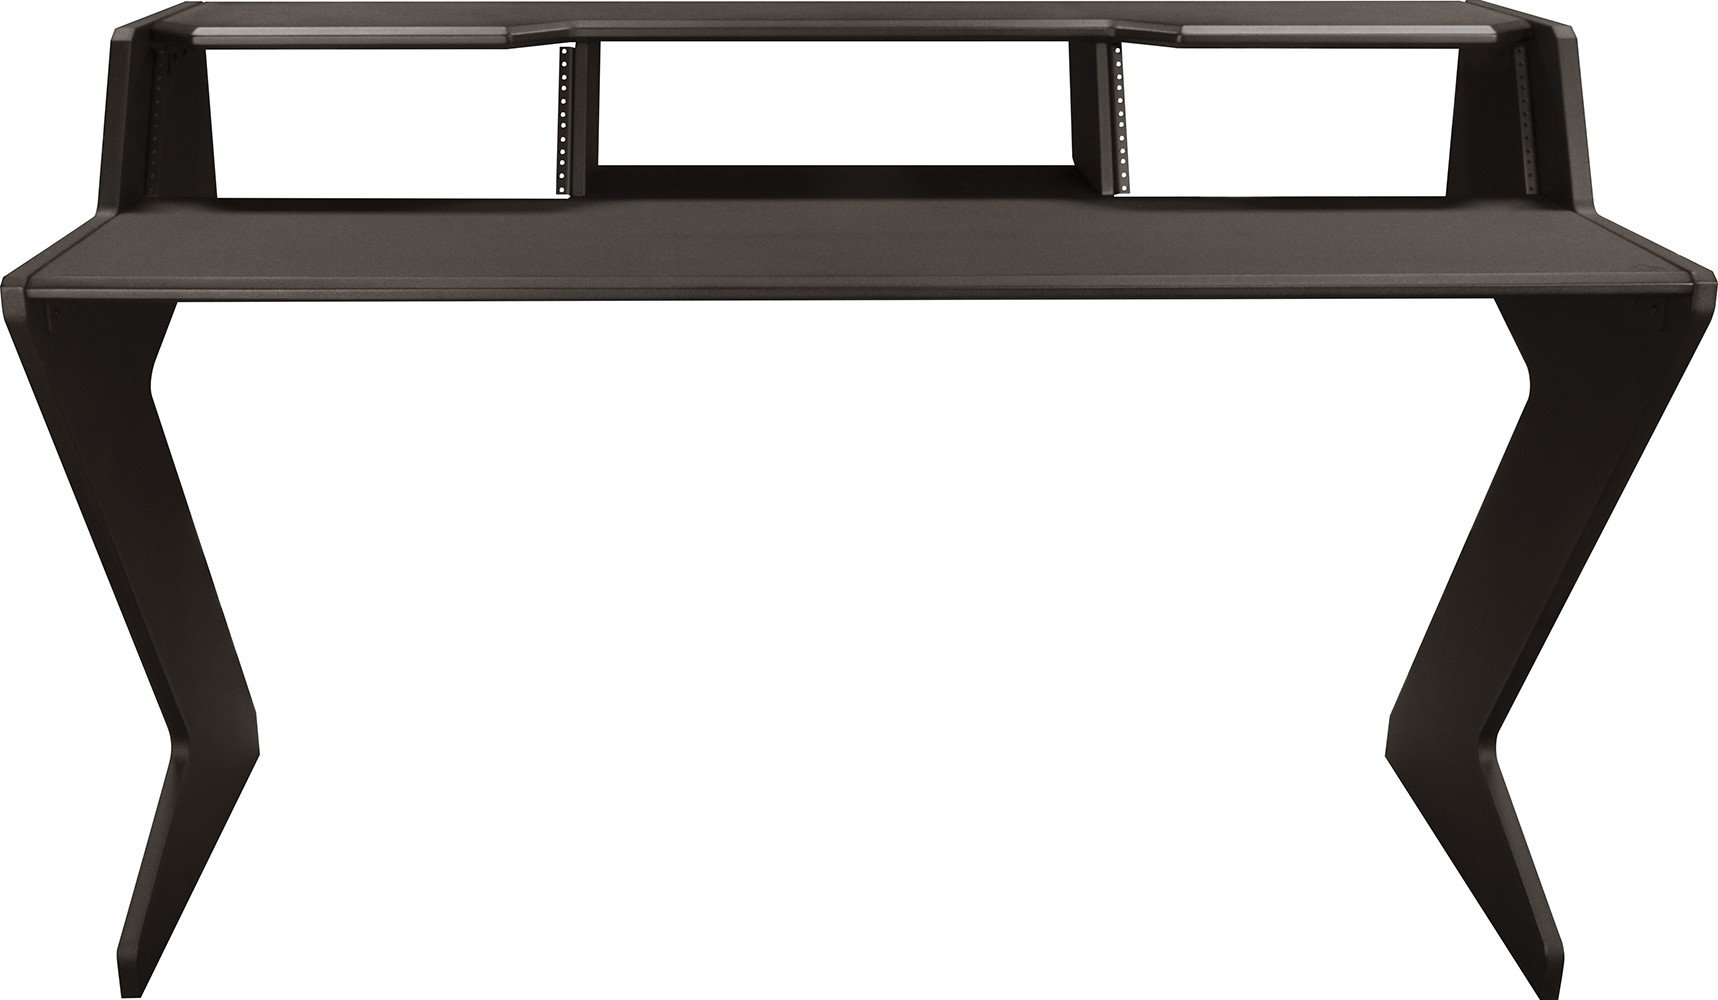 Ultimate Support Nucleus-Z Explorer Studio Desk with Shelf and two (2) - 4 space rack modules. Base Model